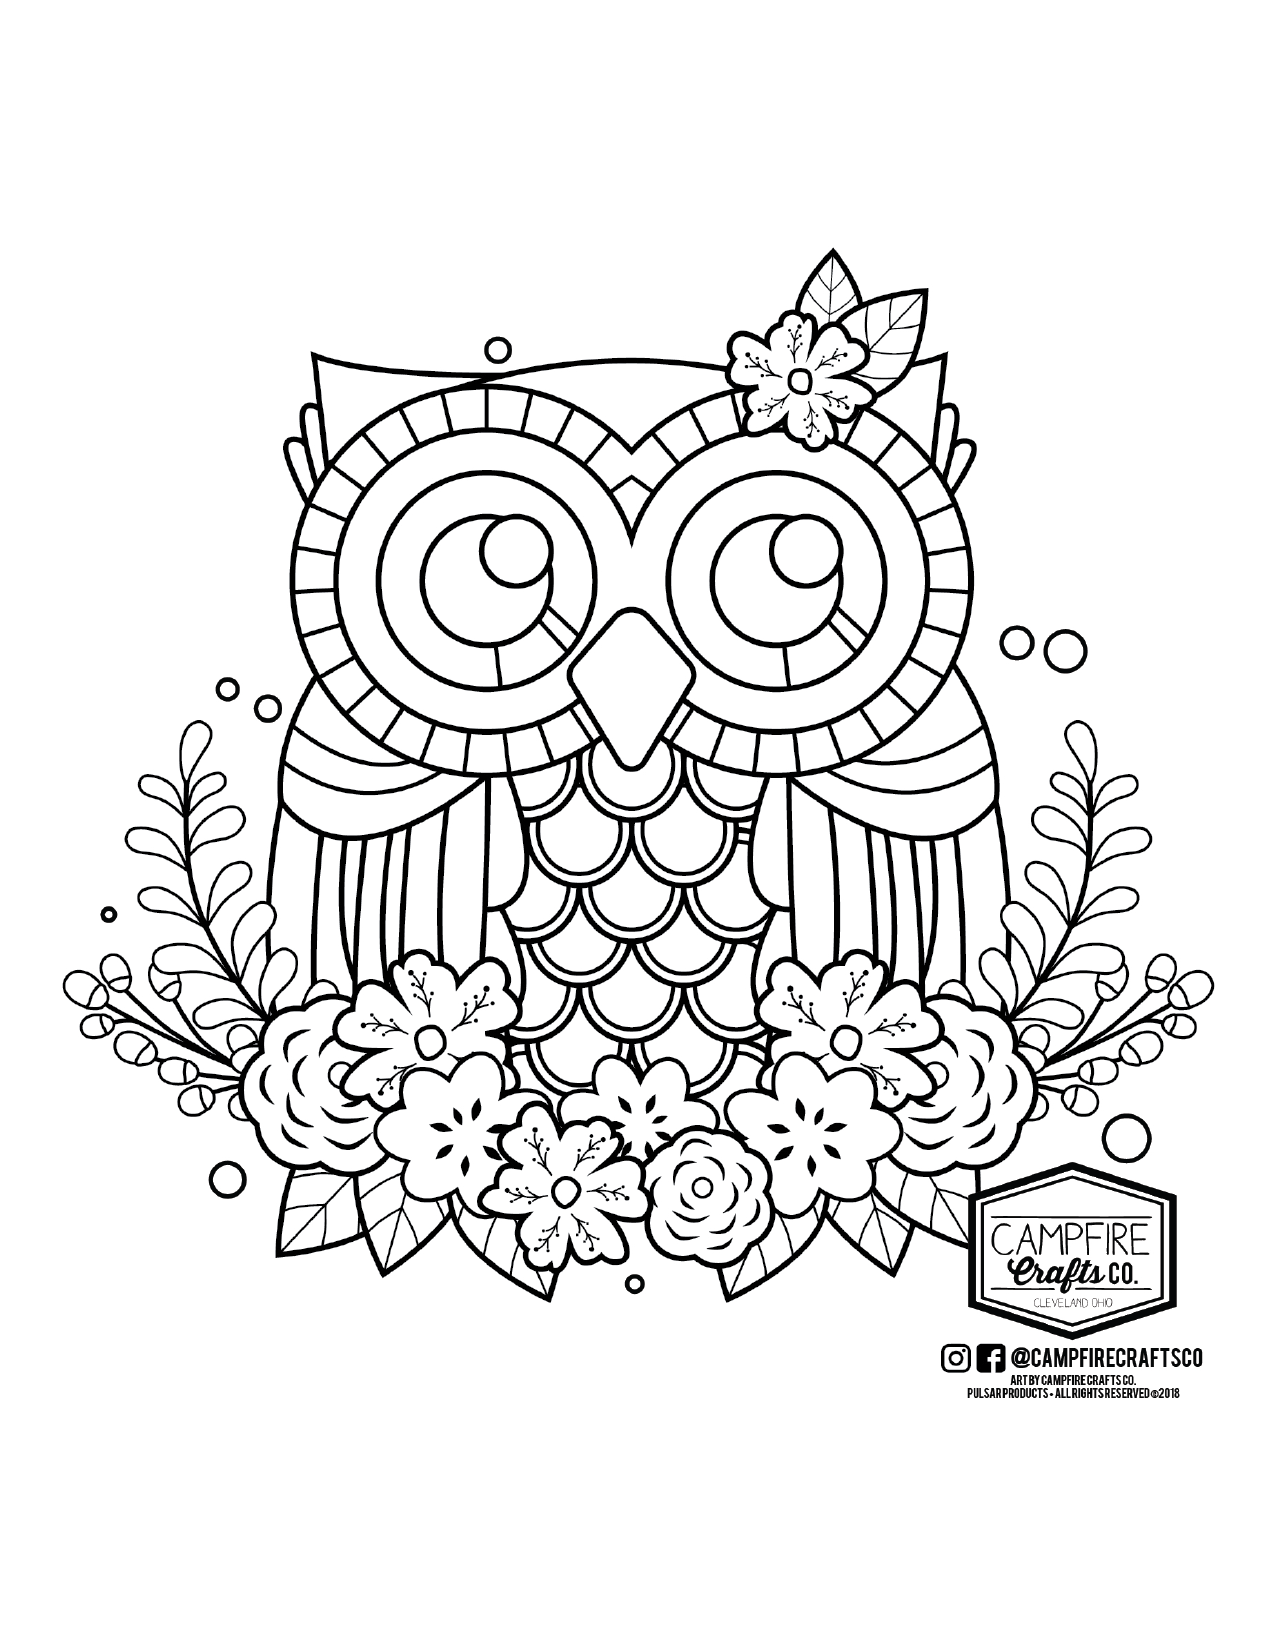 Coloring Pages-02.png